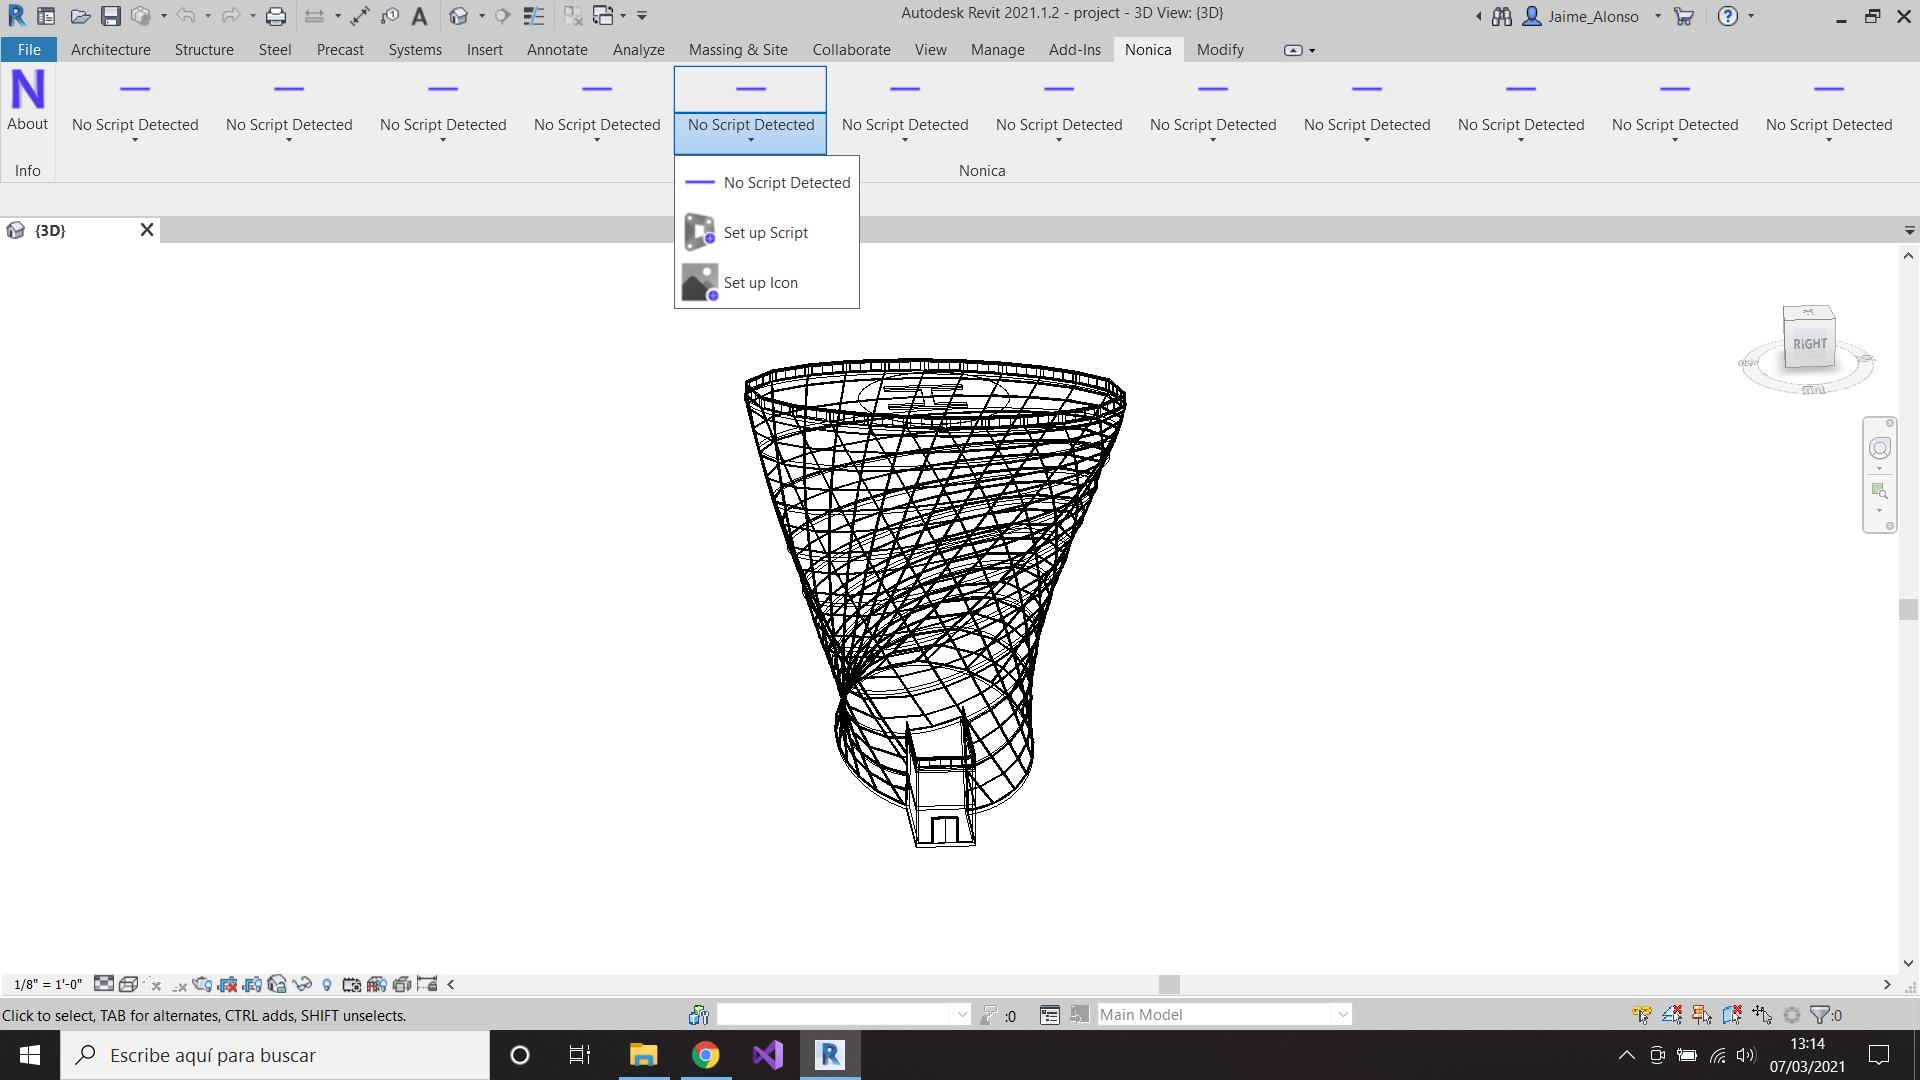 Nonica simplifies deployment of Dynamo scripts in Revit